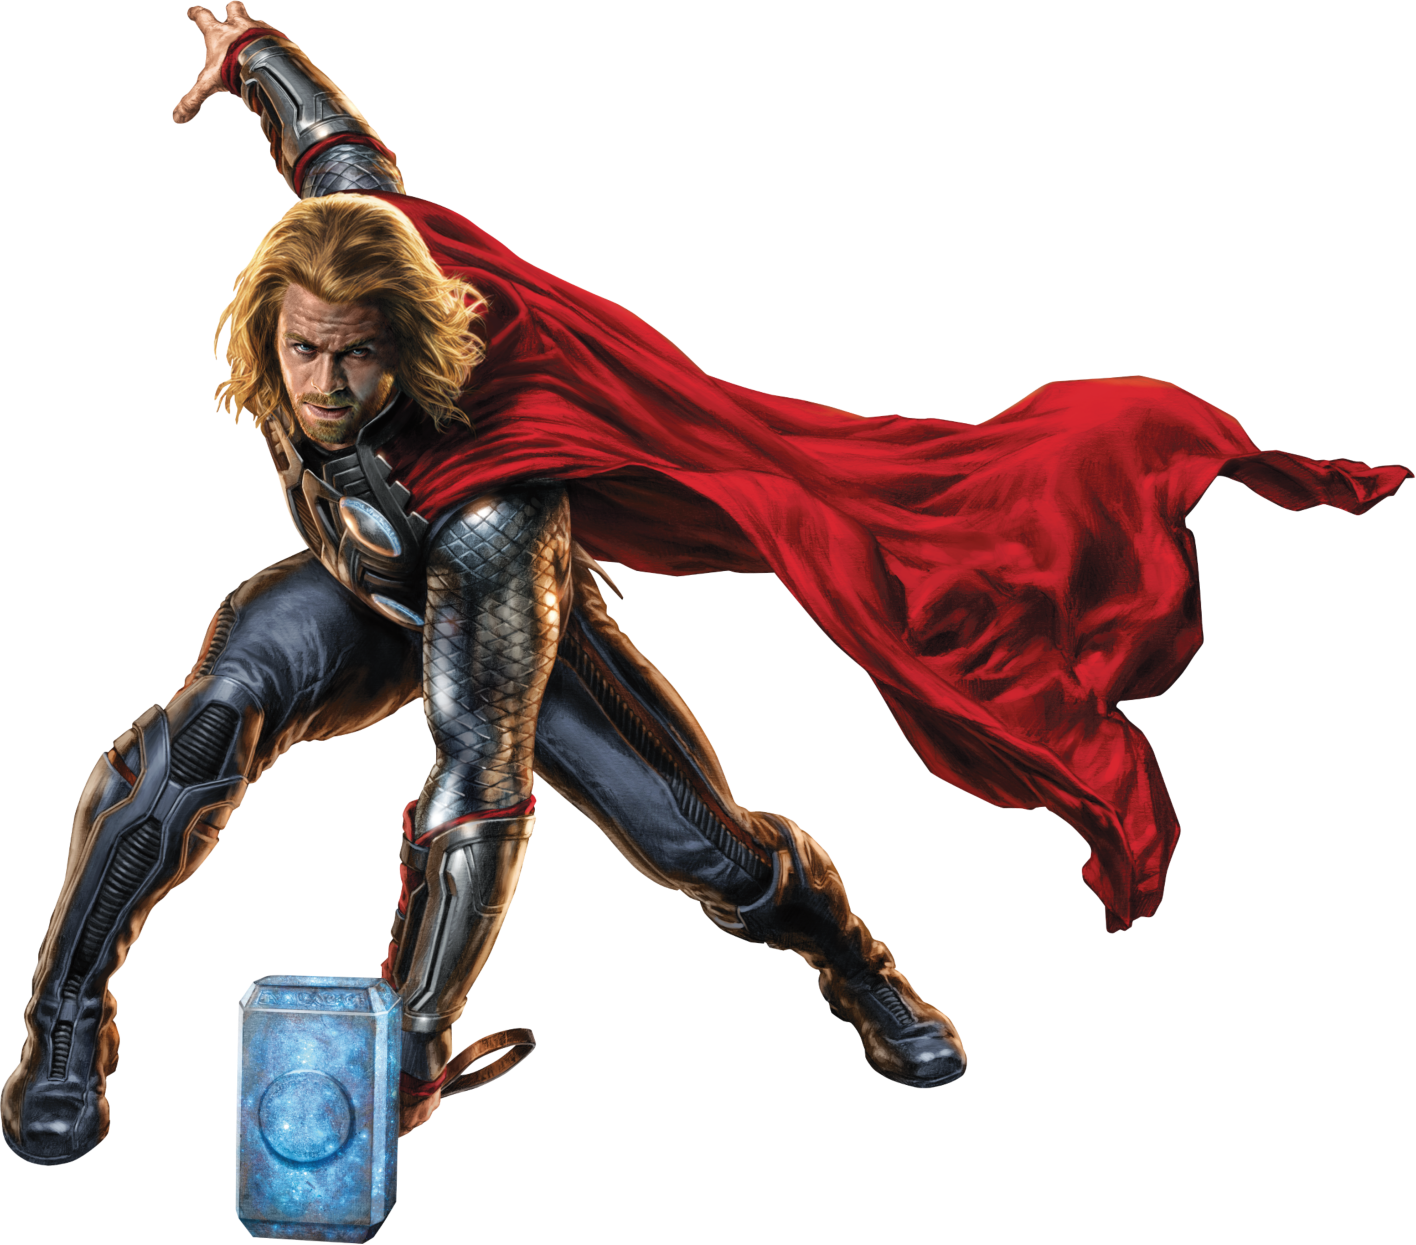 Marvel png. Image thor avengers fh